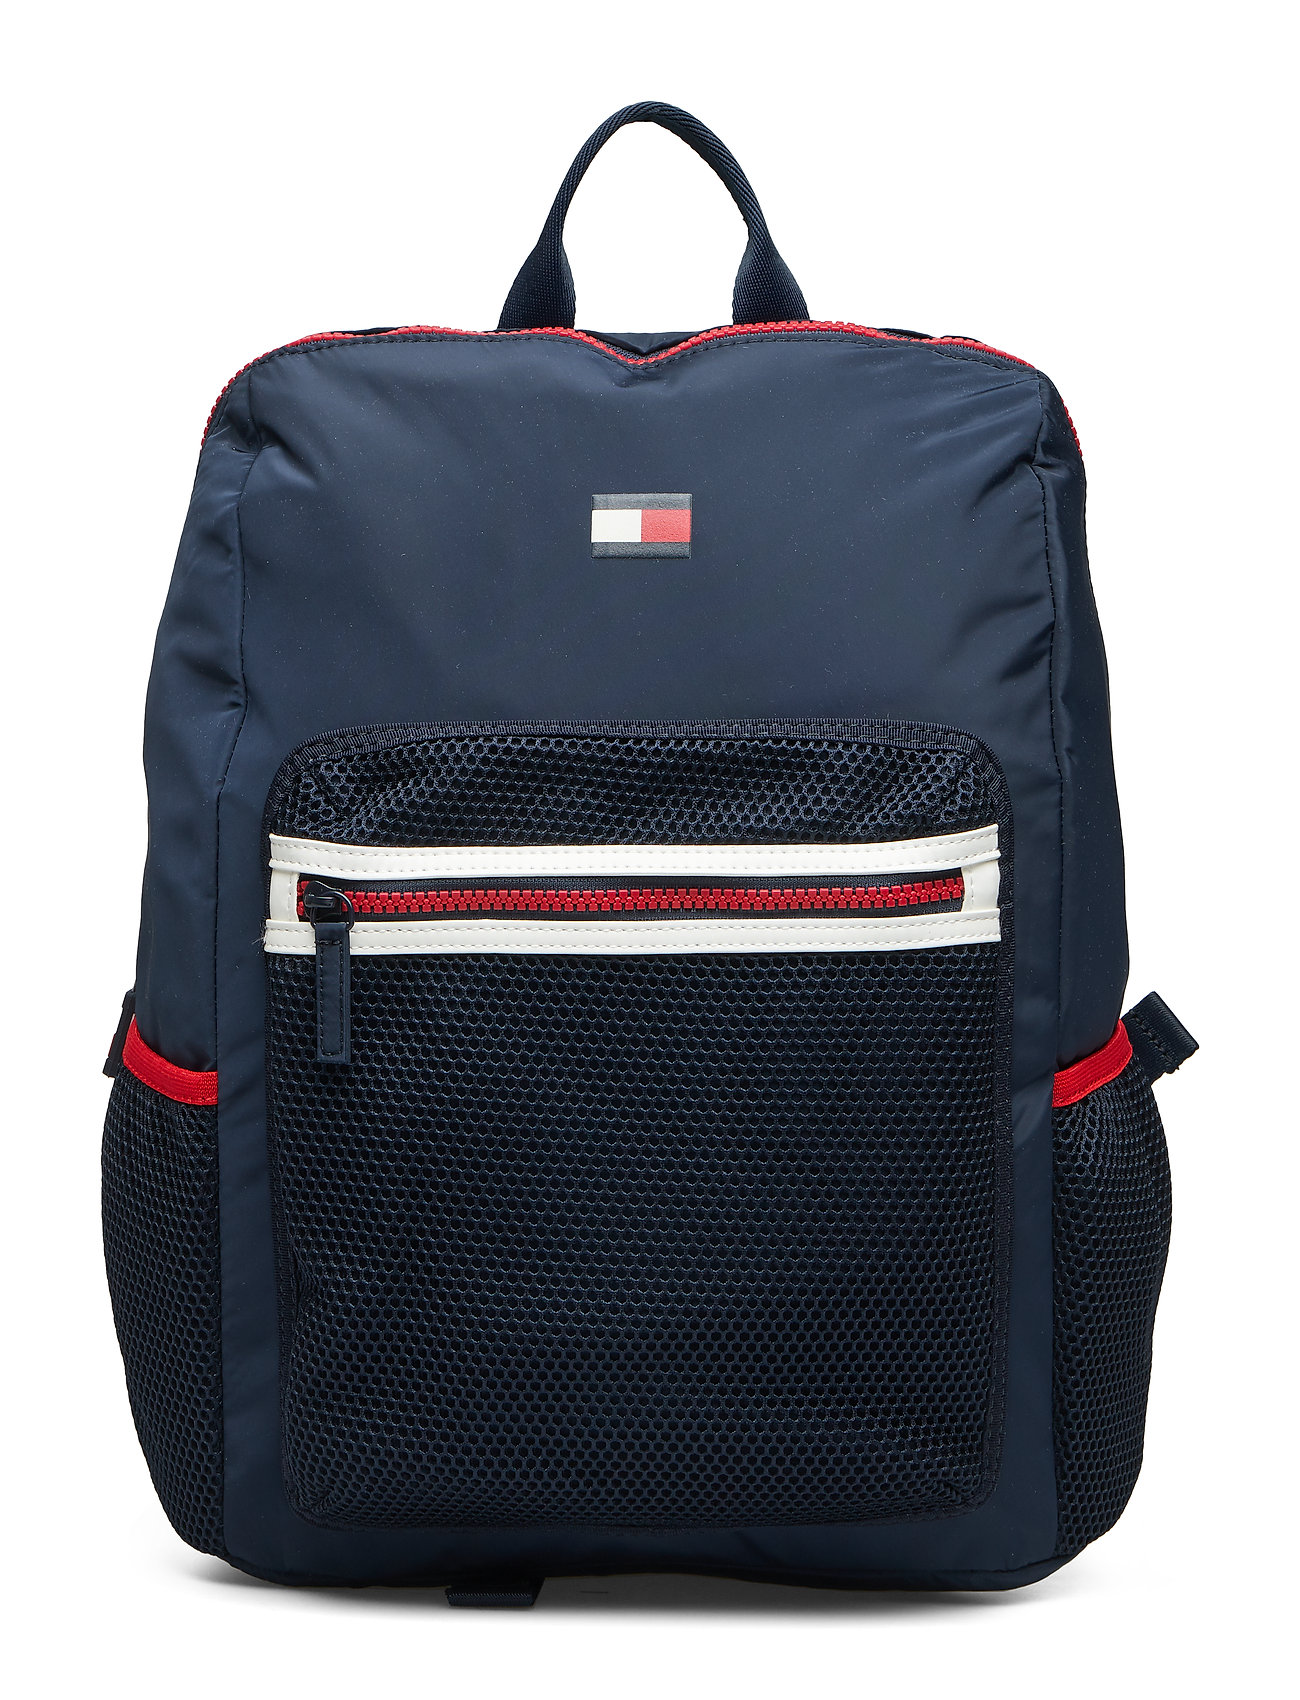 Tommy Hilfiger CORPORATE BACKPACK - CORPORATE